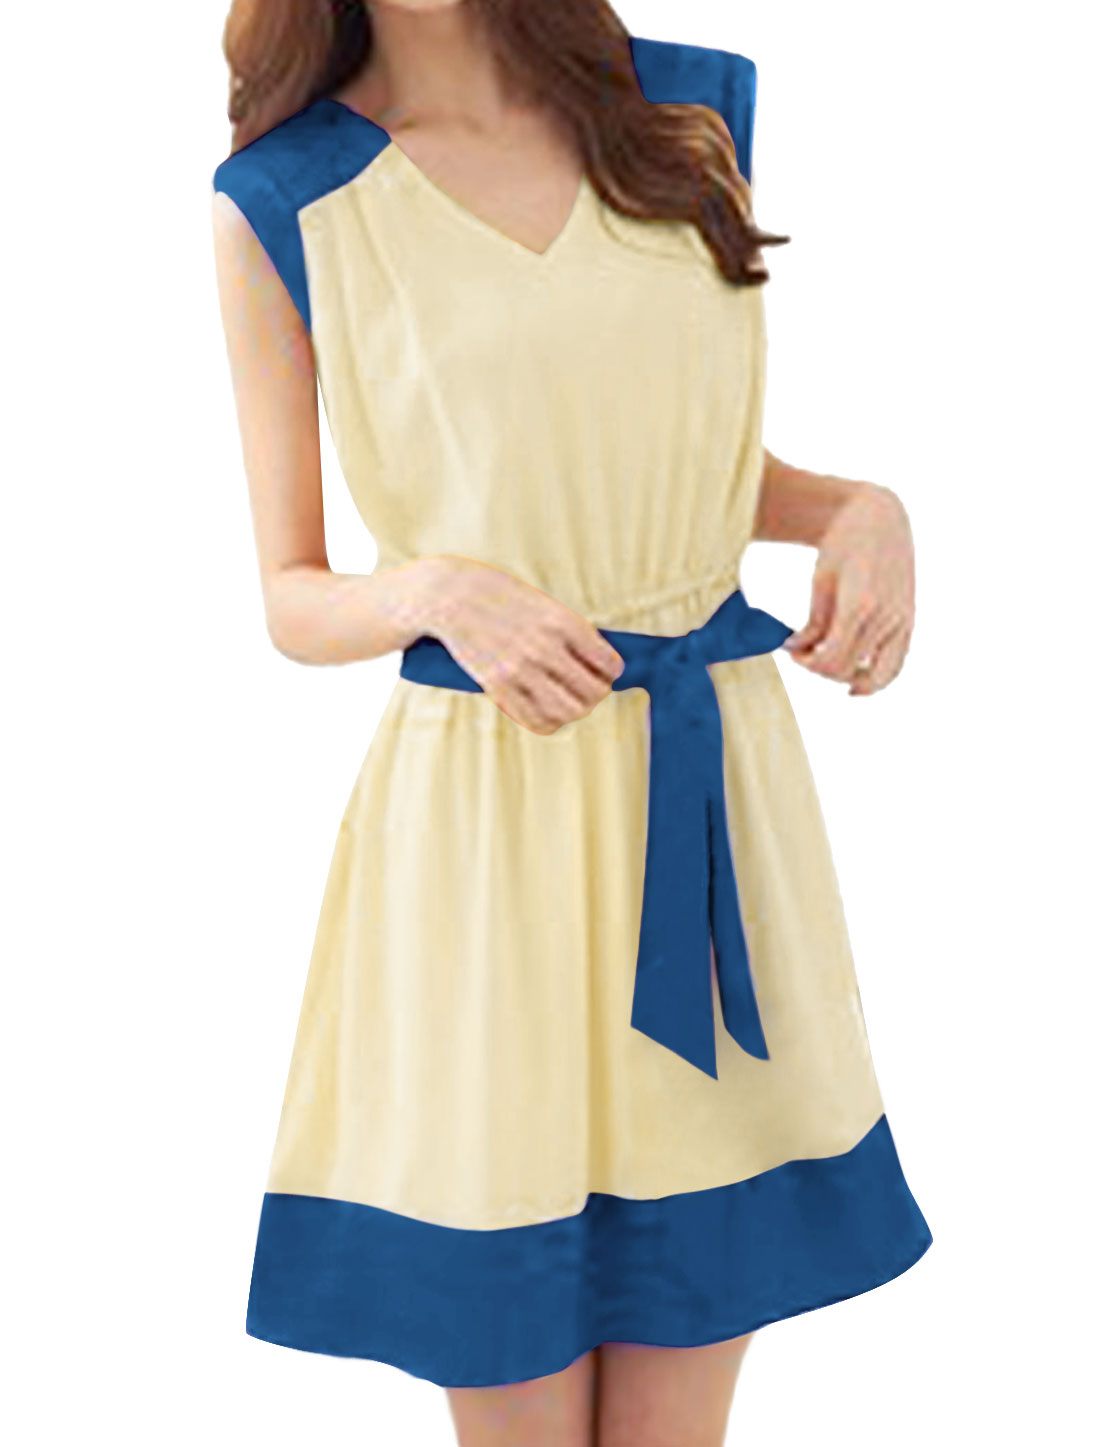 Ladies Sleeveless V Neck Panel Banded Dress Blue Beige S